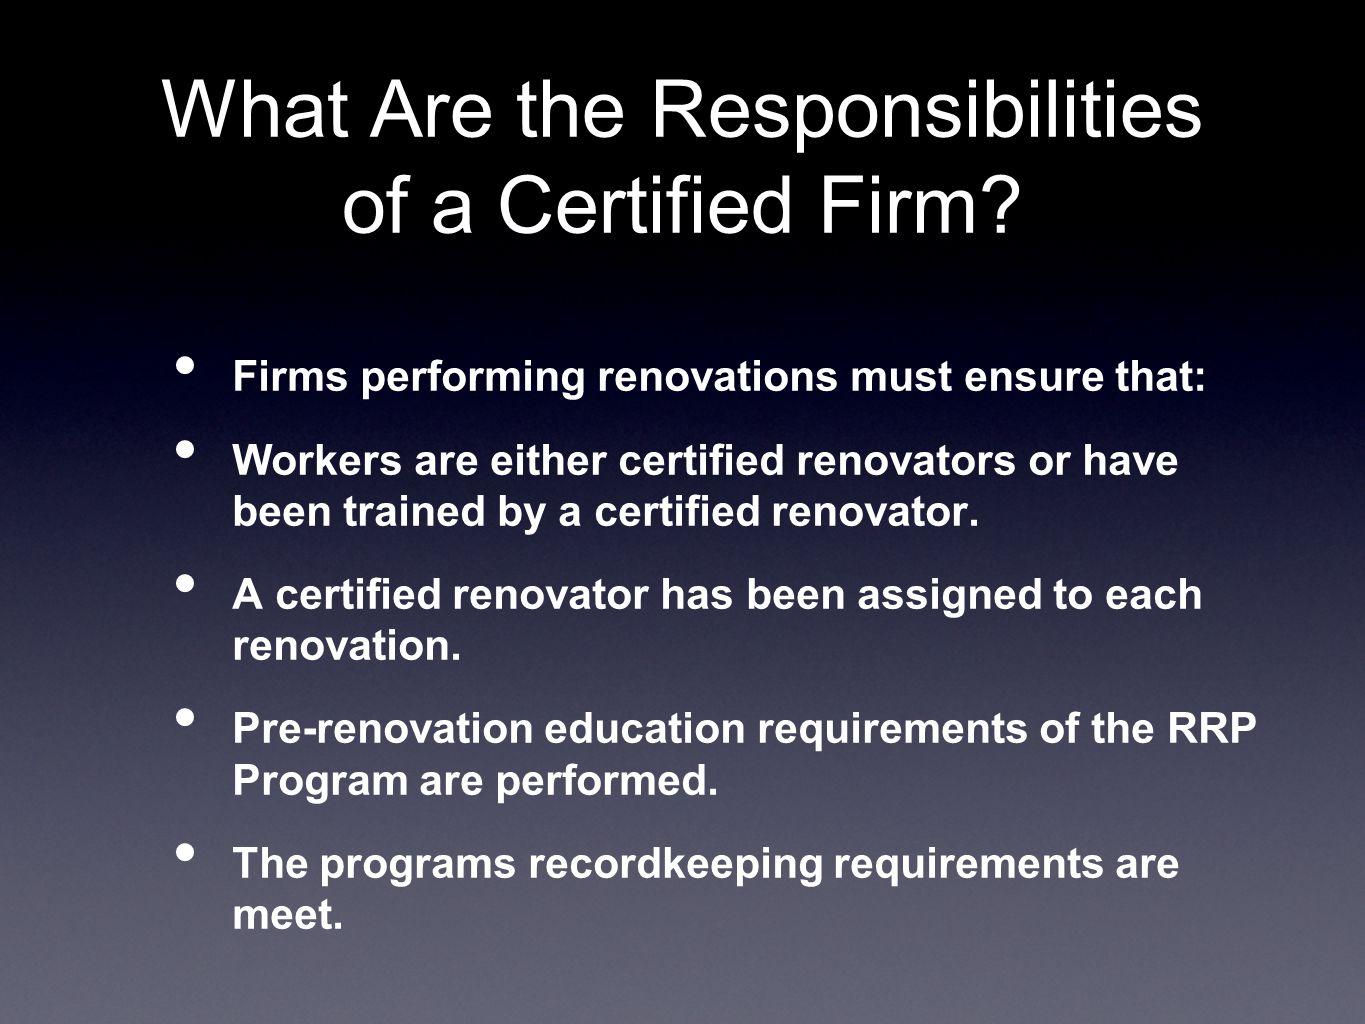 What Are the Responsibilities of a Certified Firm? Firms performing renovations must ensure that: Workers are either certified renovators or have been